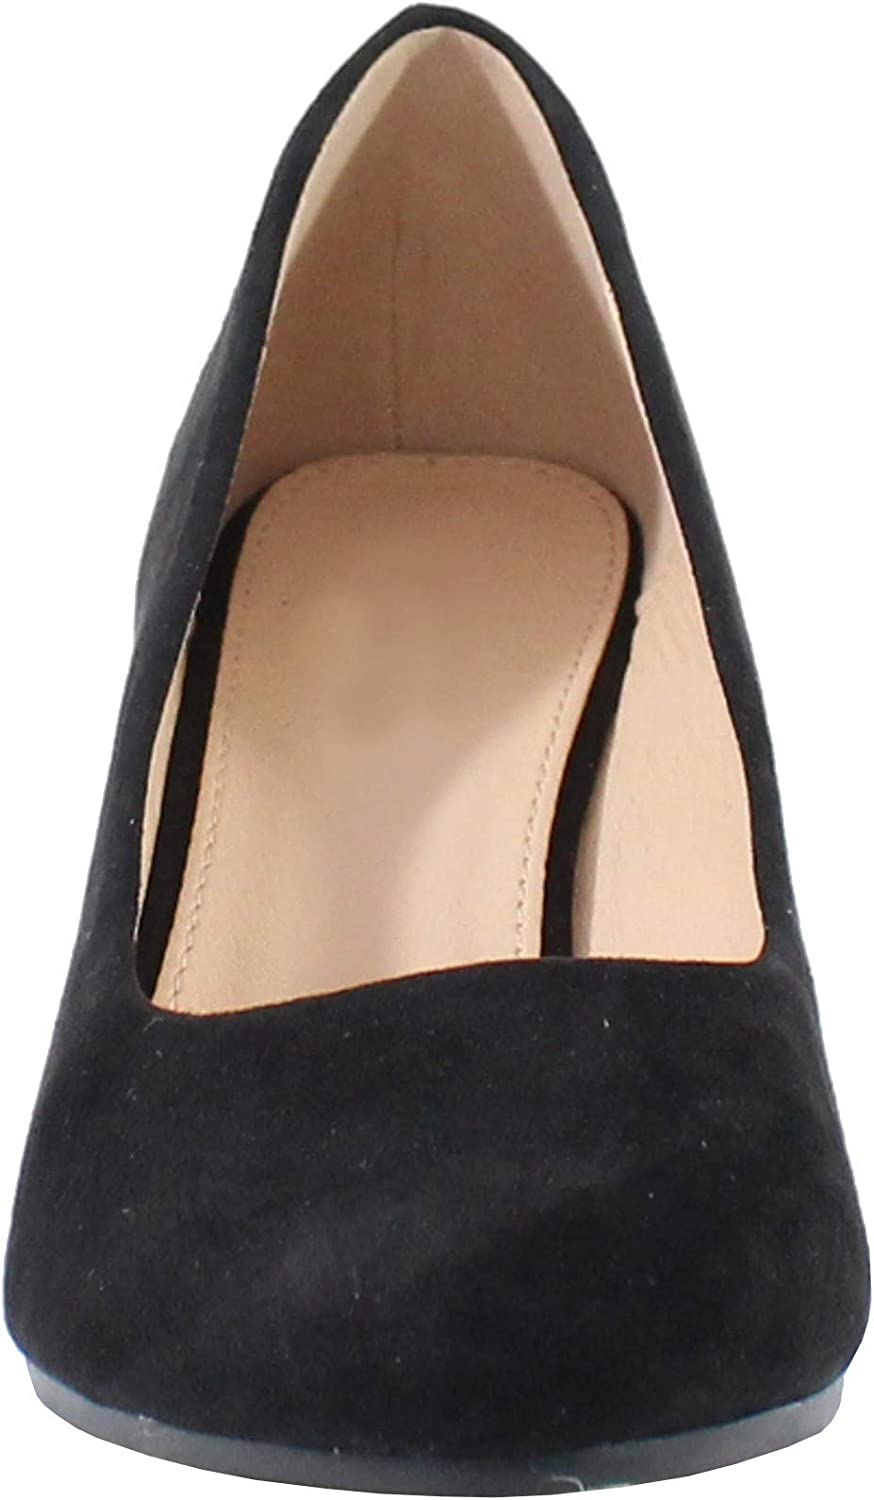 By Shoes Femme Ballerine Compens/ée Style Daim